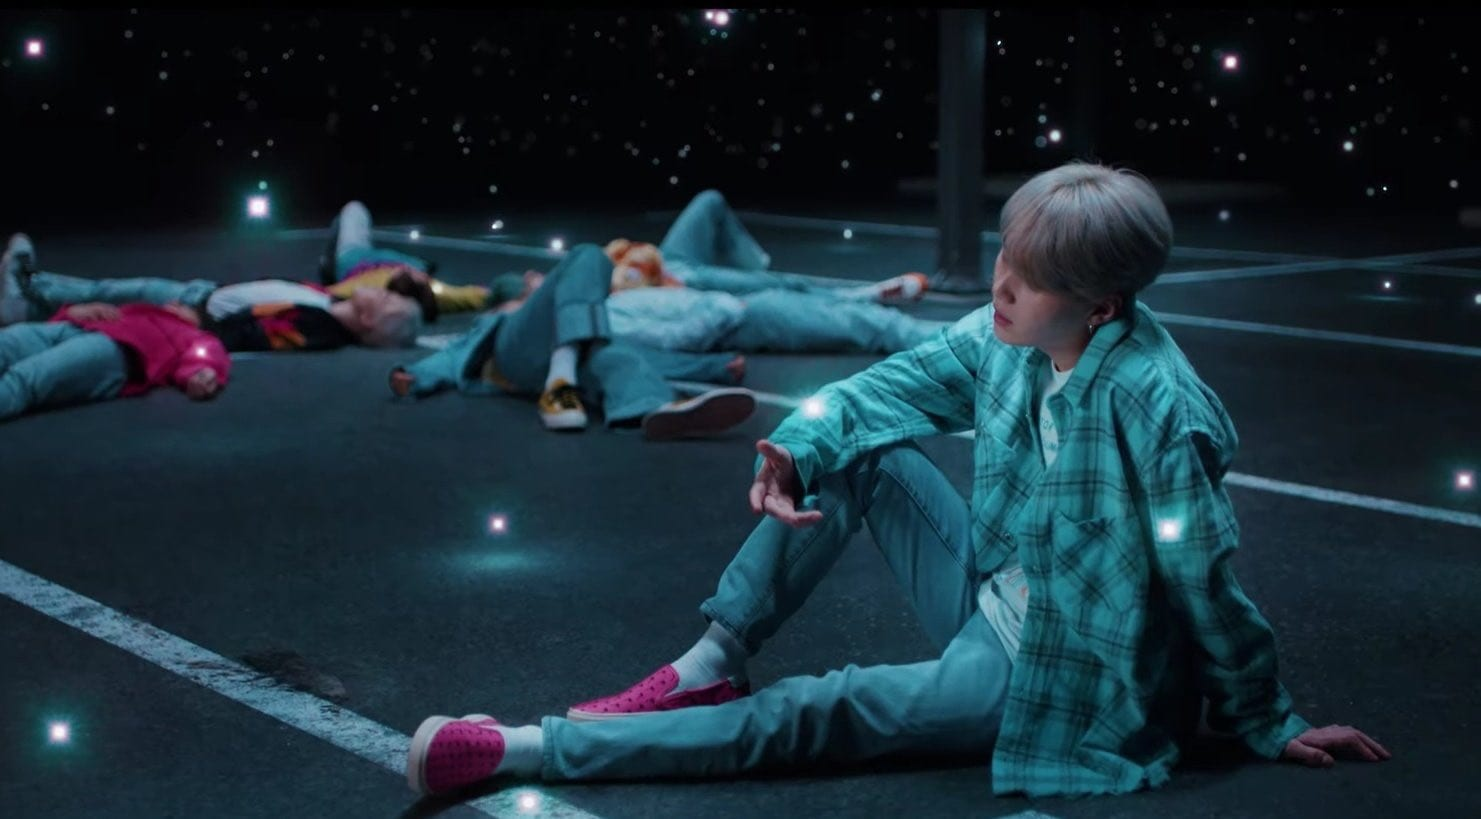 """WATCH: BTS Moves Fans With Sentimental """"Lights"""" Music Video"""